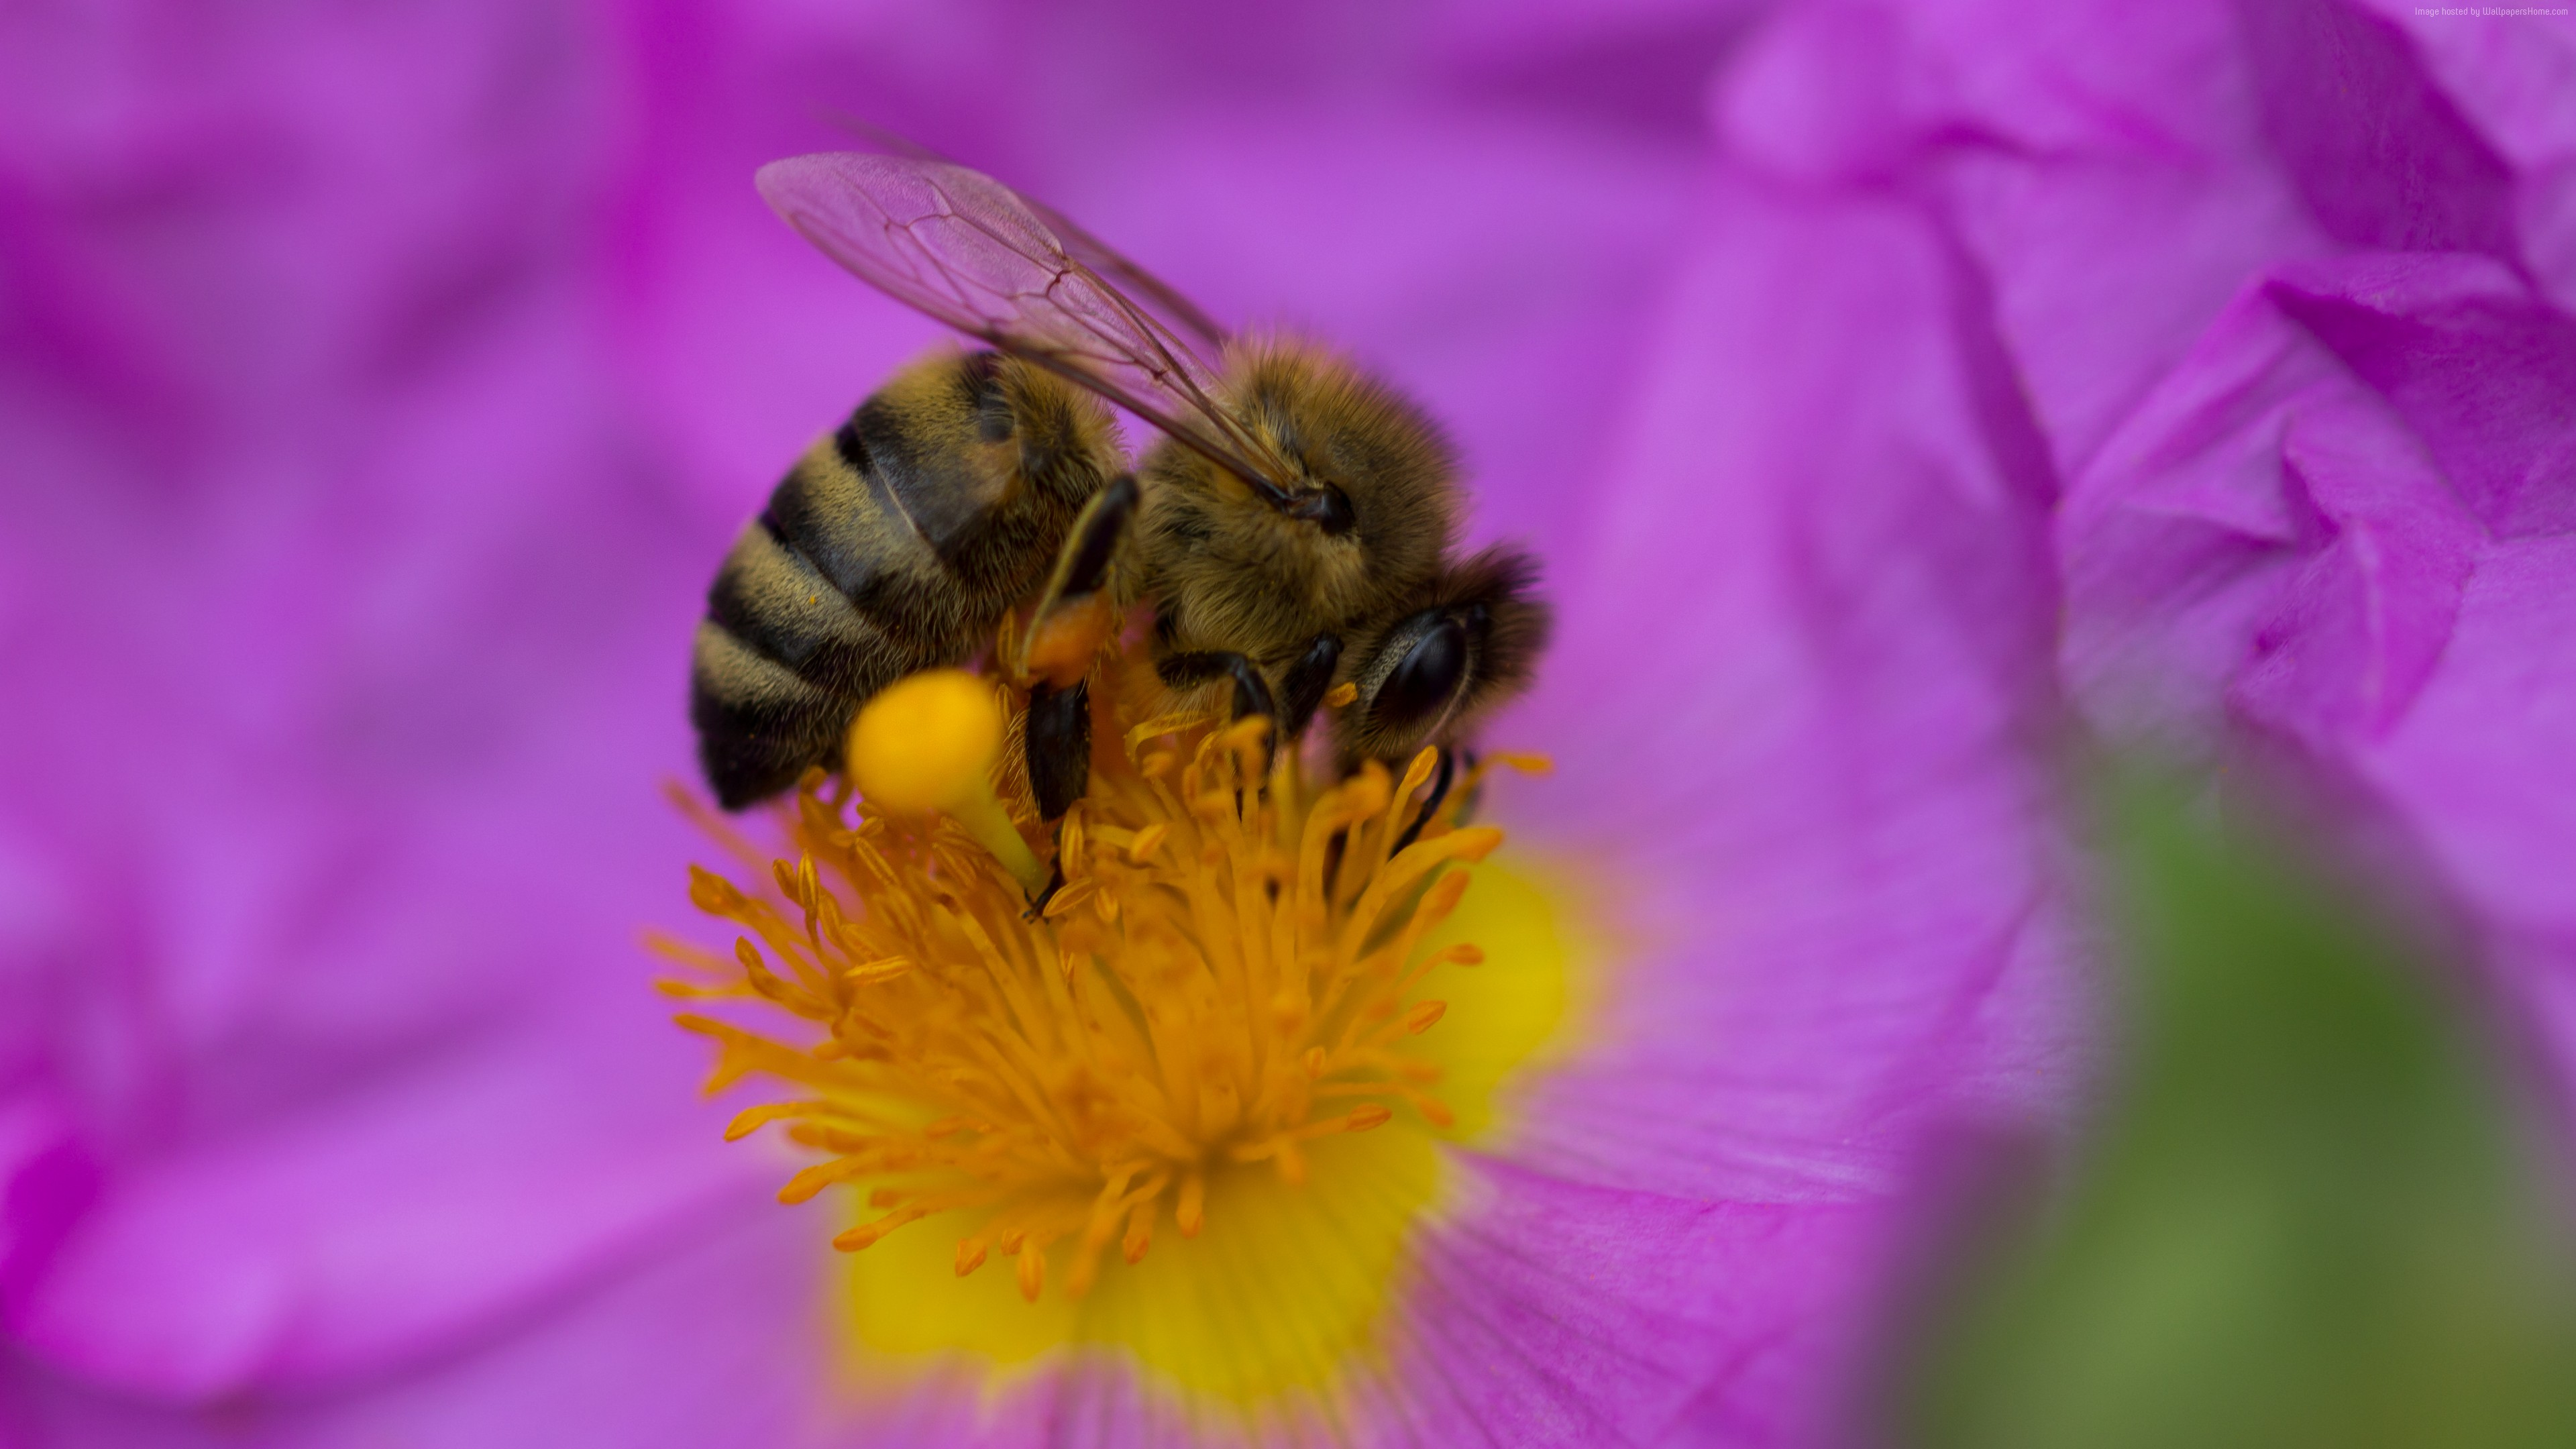 Wallpaper bee, purple, flower, yellow, insects, Animals